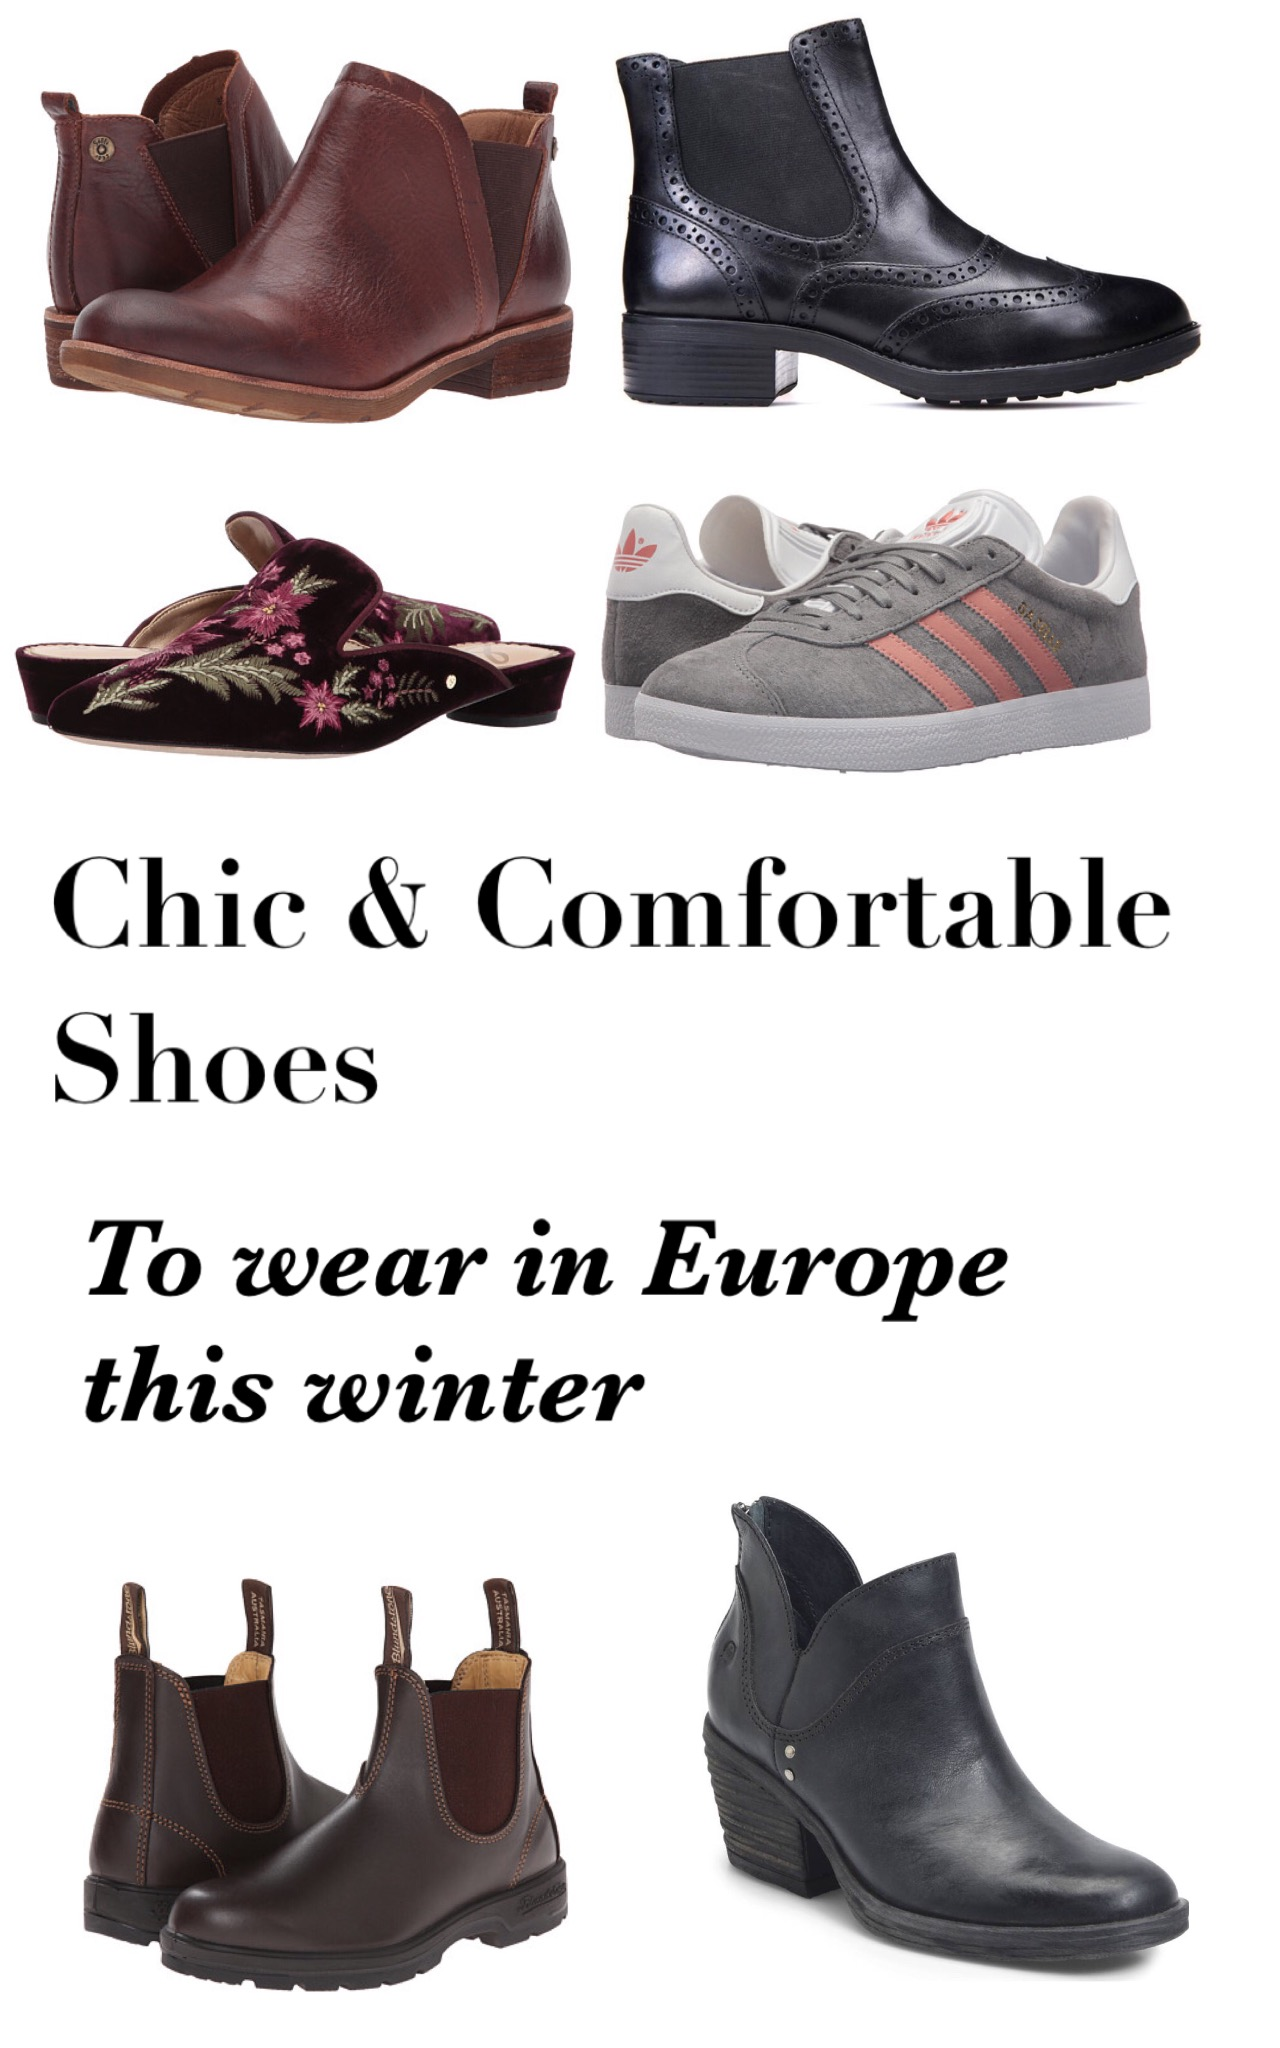 boots and shooes for Europe this winter